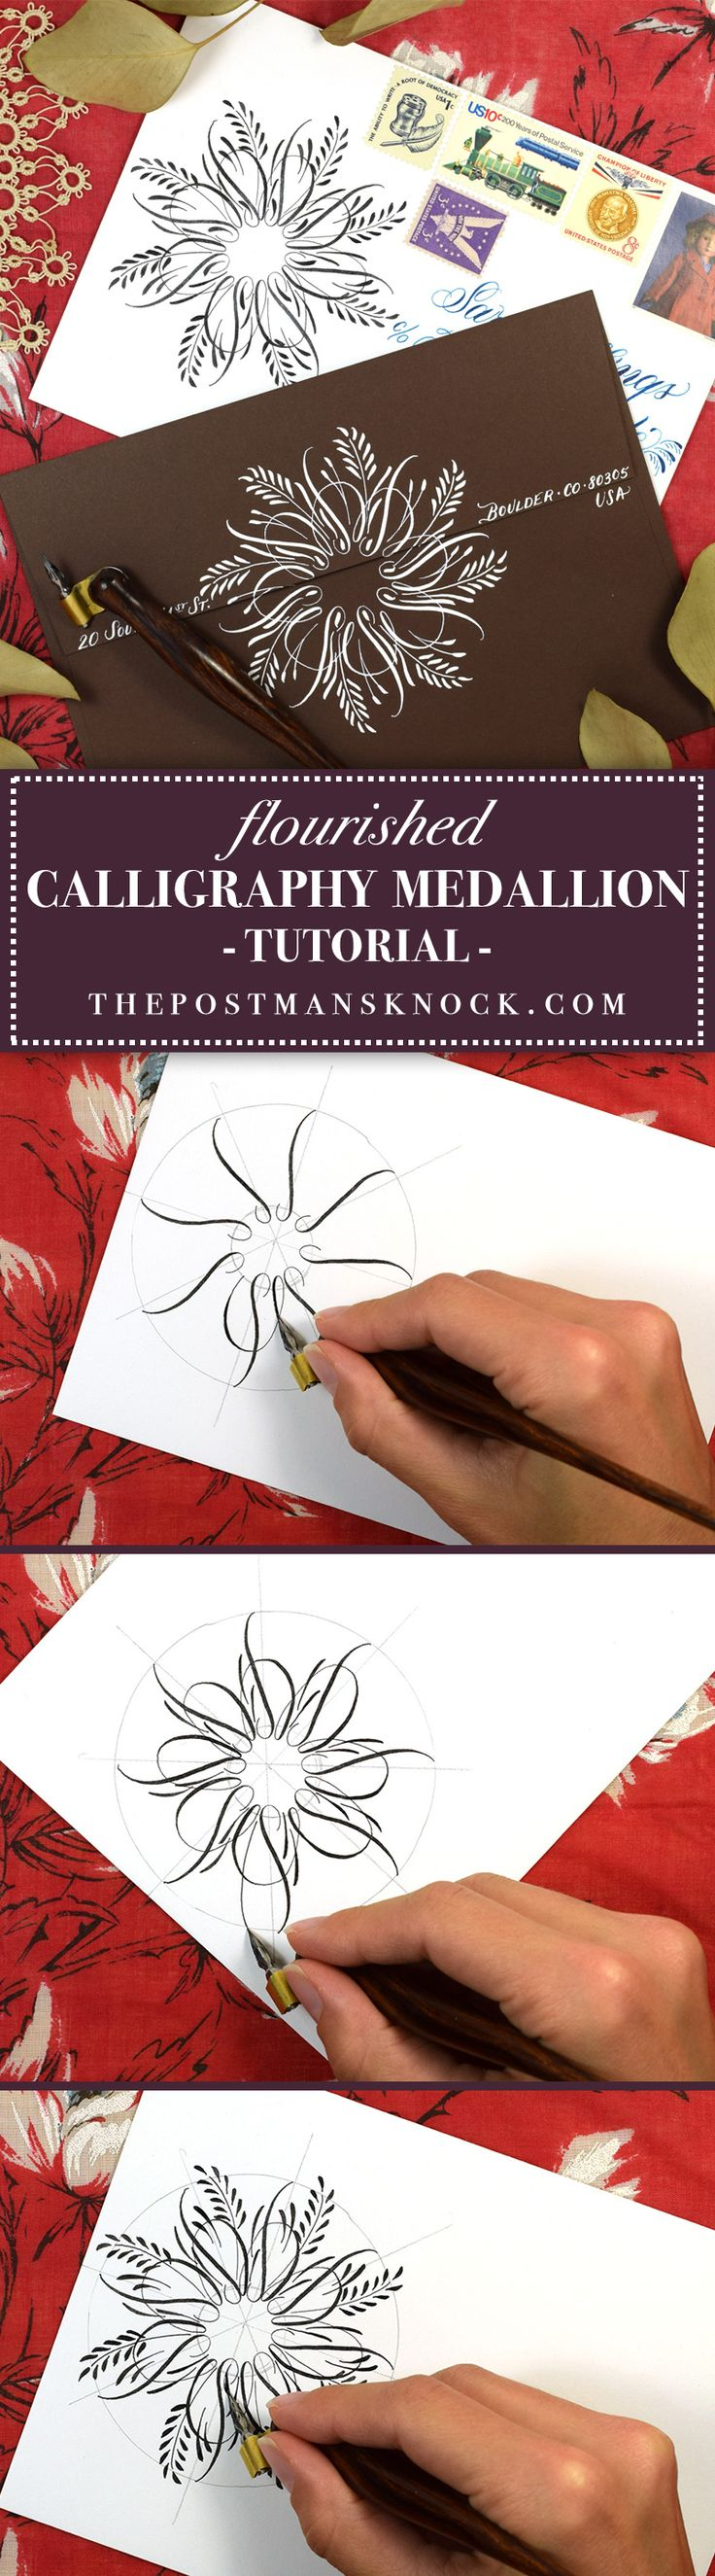 1054 best calligraphy images on pinterest hand lettering